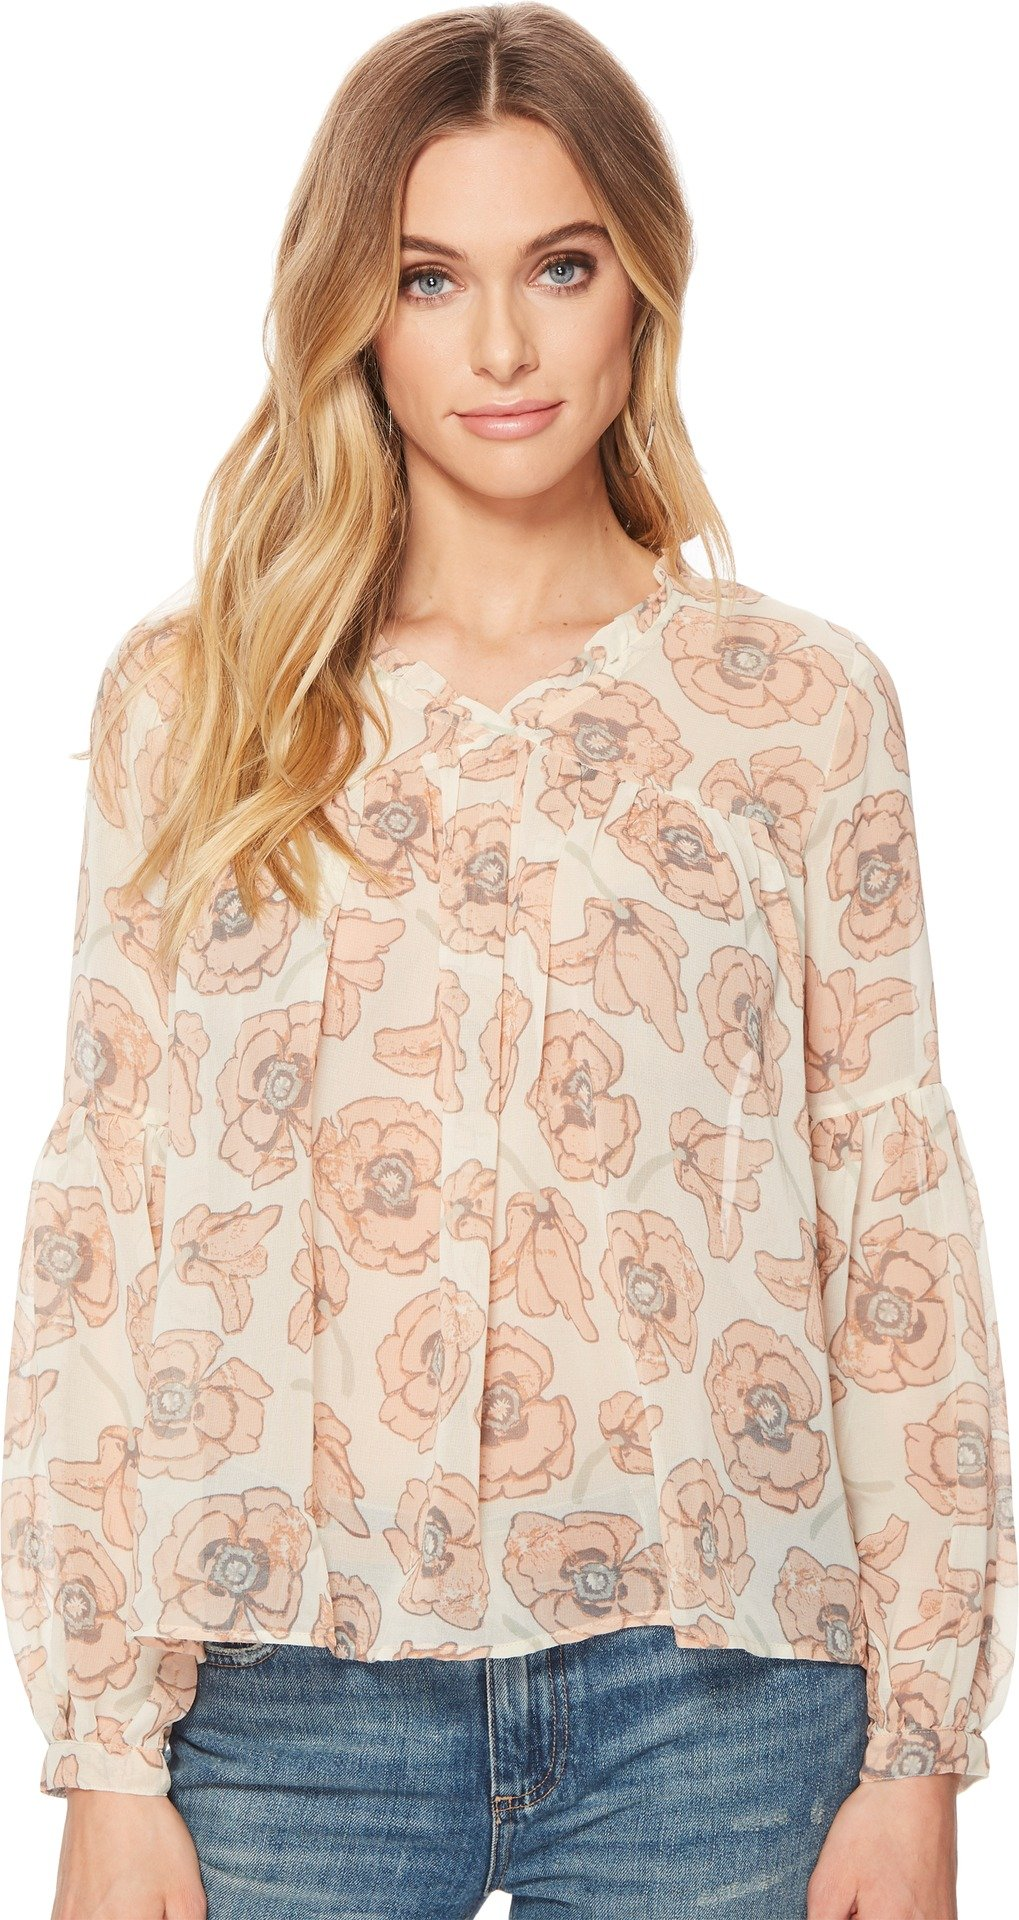 Lucky Brand Women's Pink Exploded Floral Top, Pink/Multi, S